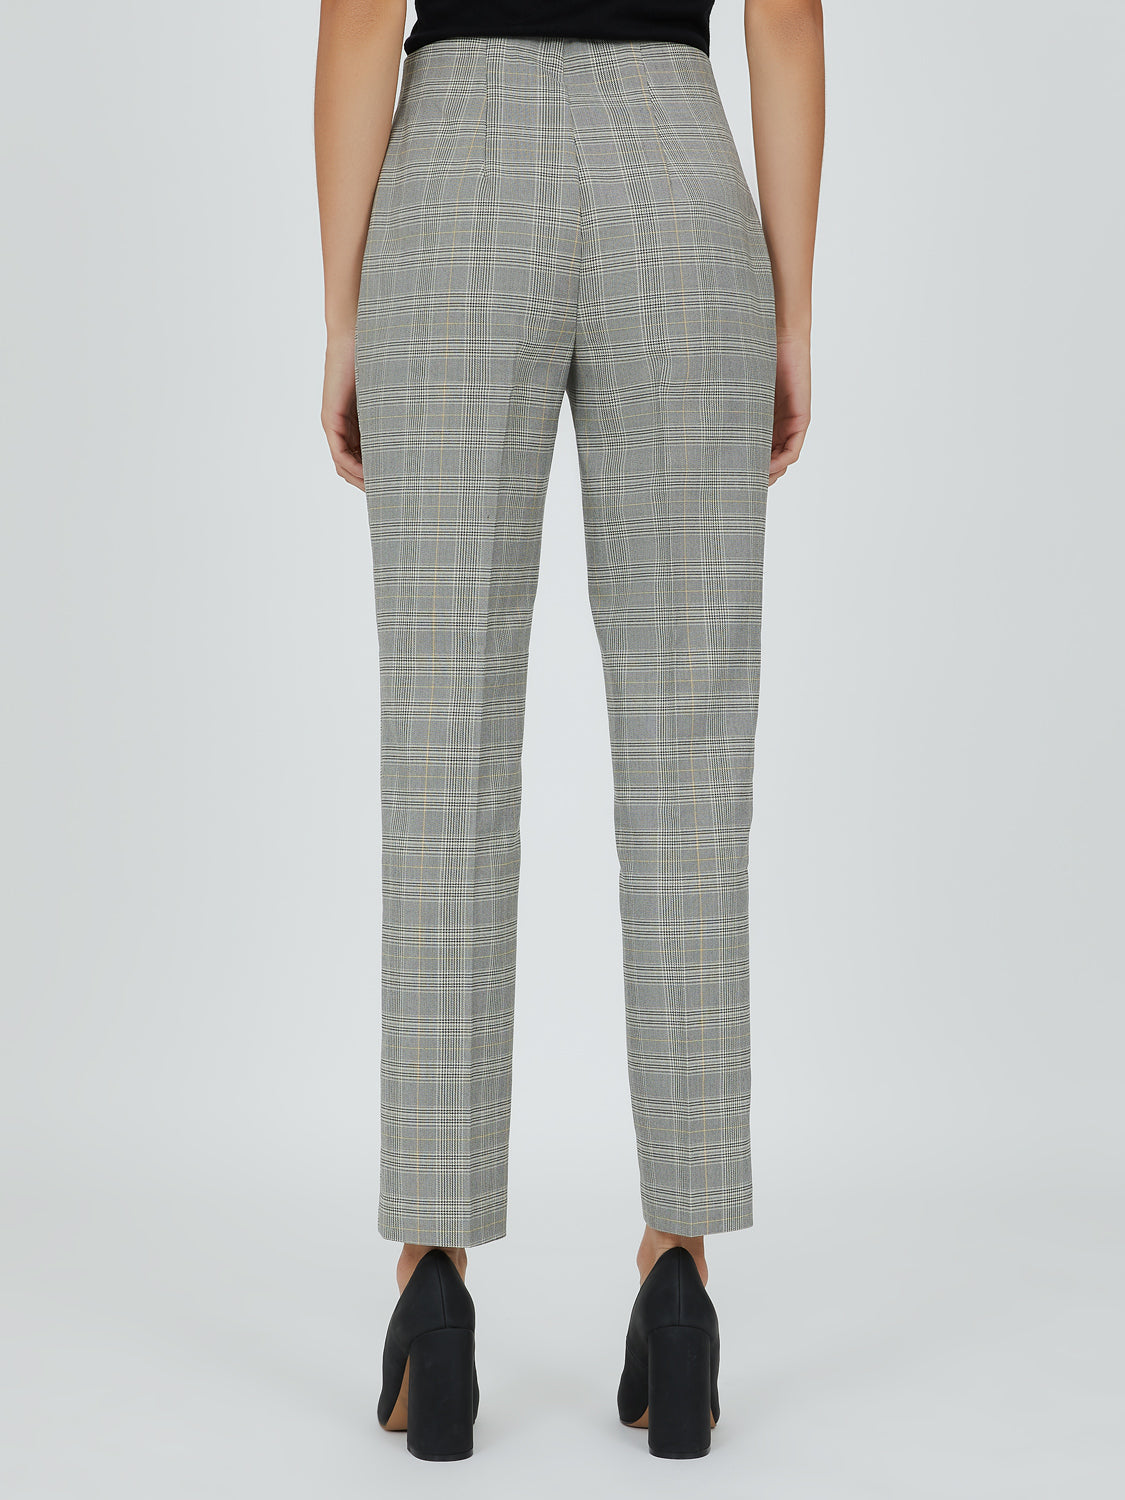 Pantalon cigarette tendance à carreaux